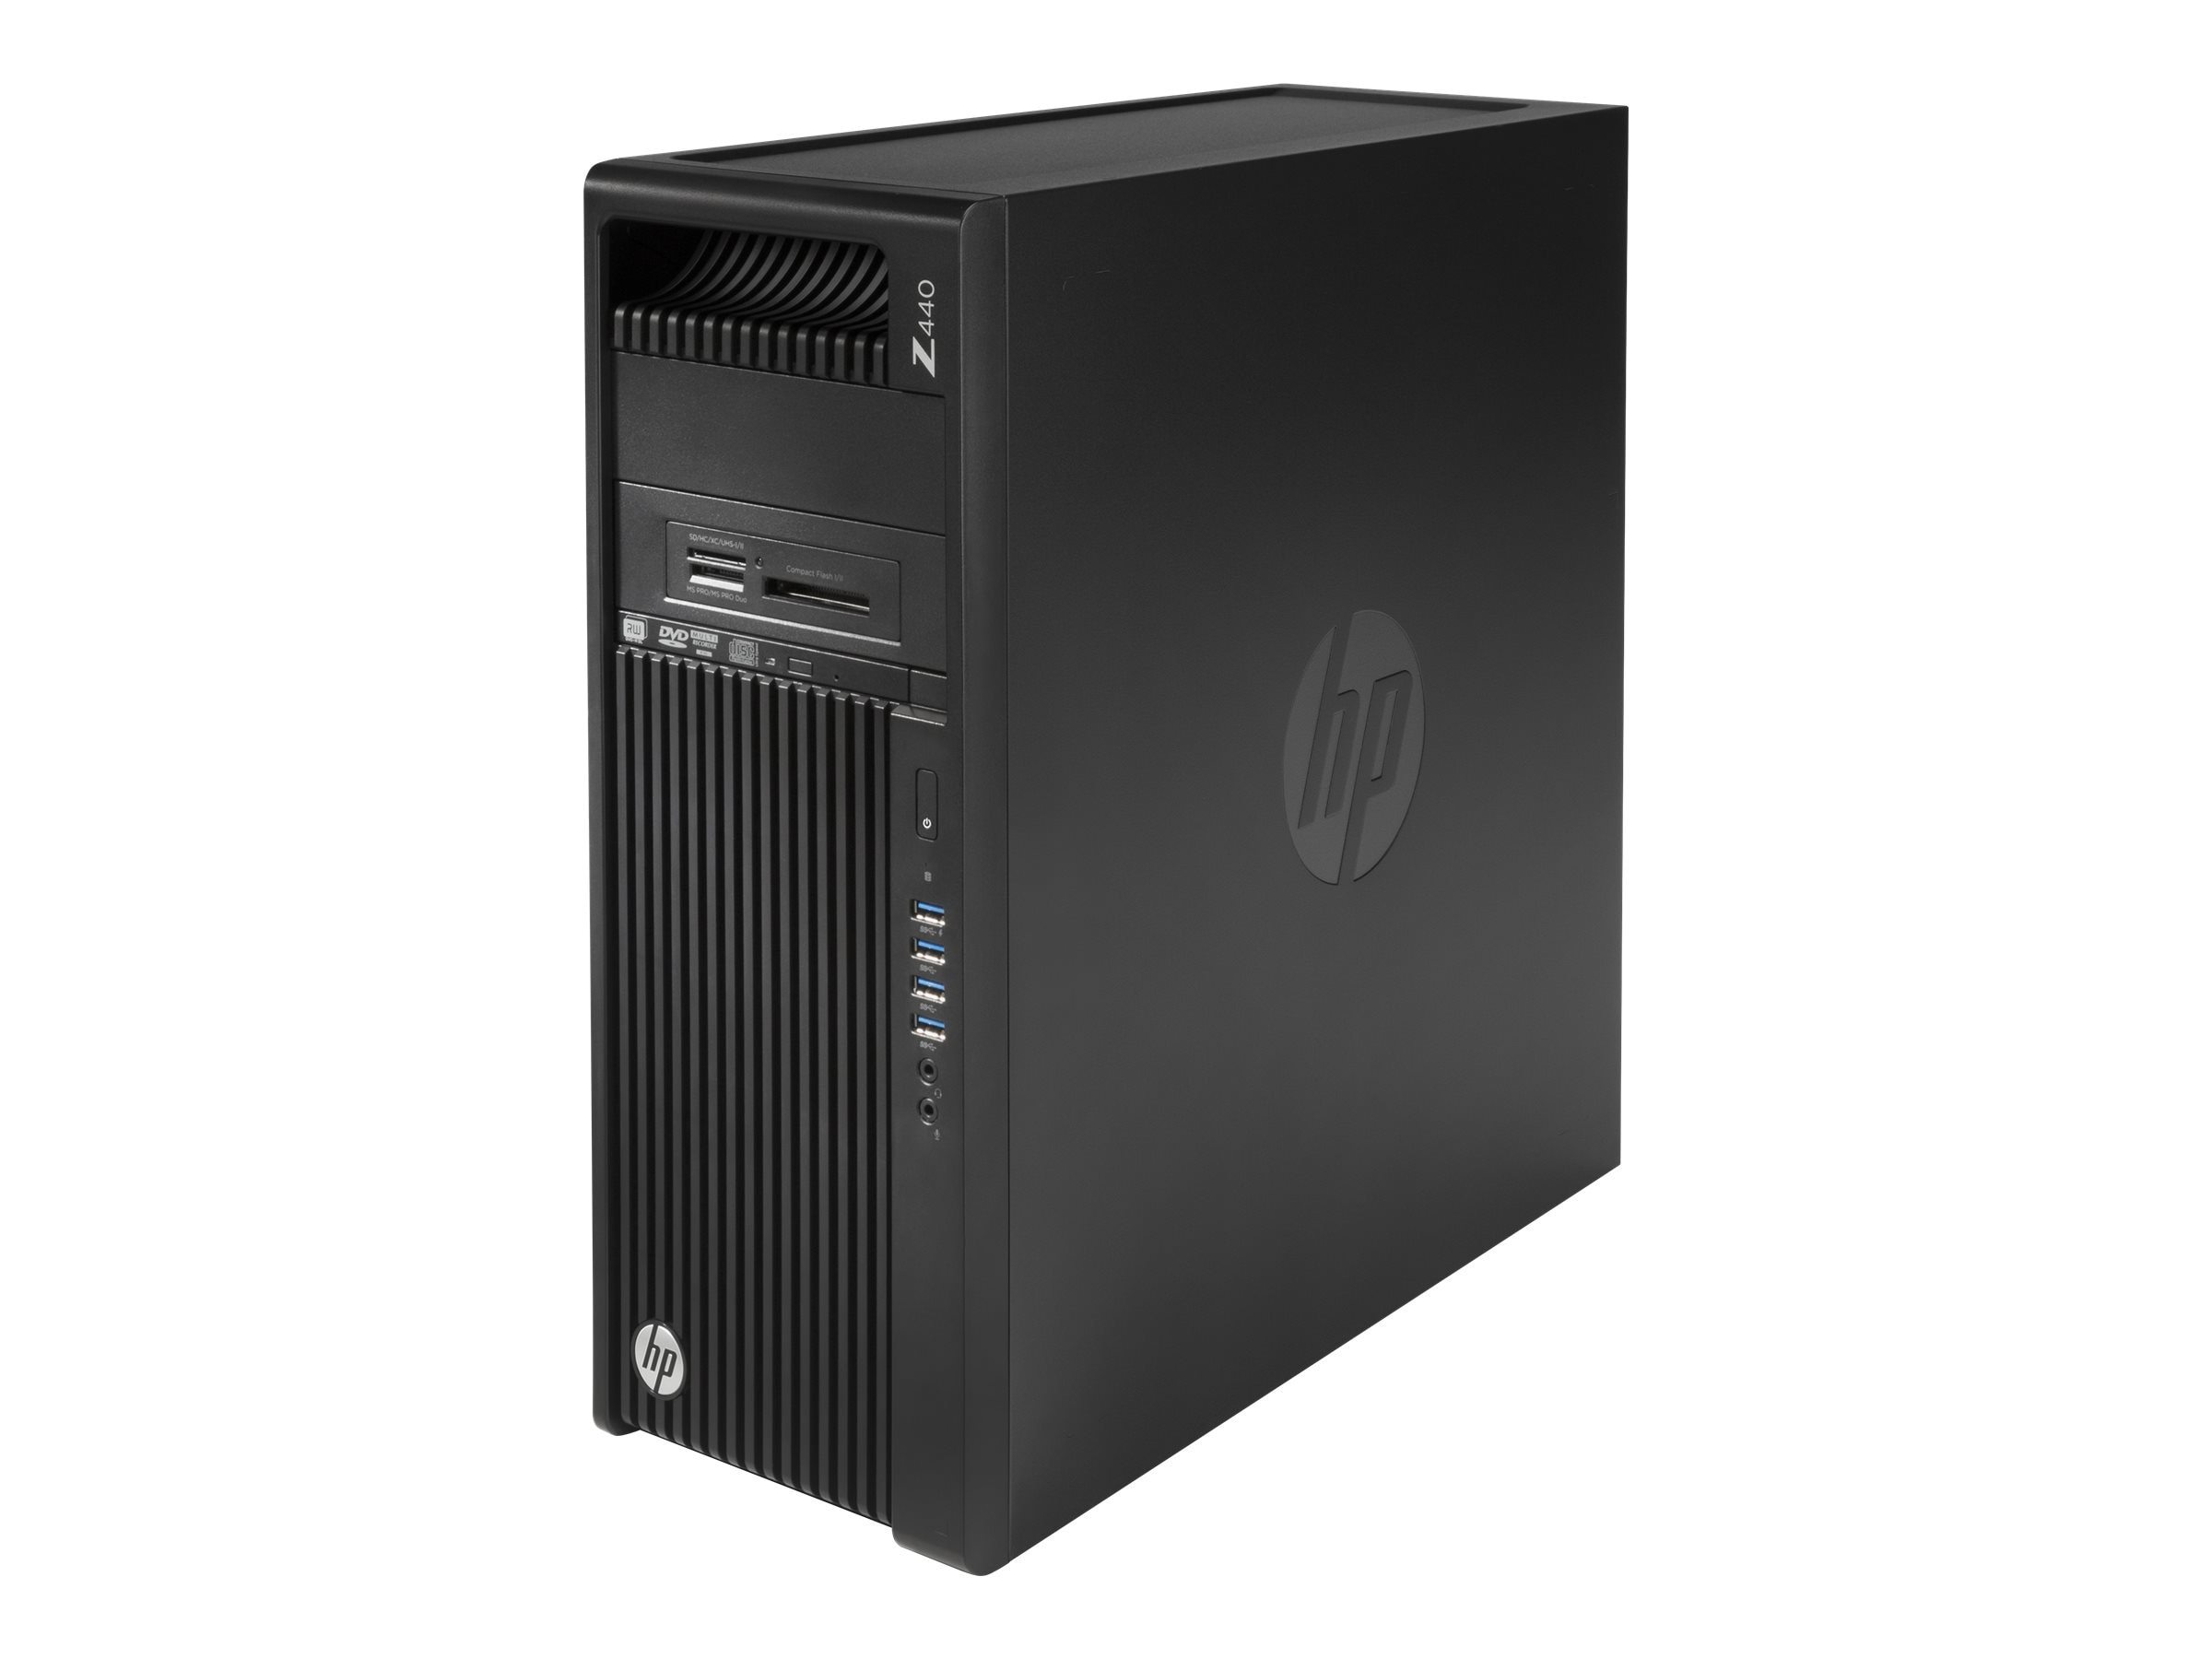 HP Z440 3.5GHz Xeon Microsoft Windows 7 Professional 64-bit Edition   Windows 8.1 Pro, F1M43UT#ABA, 17933309, Workstations